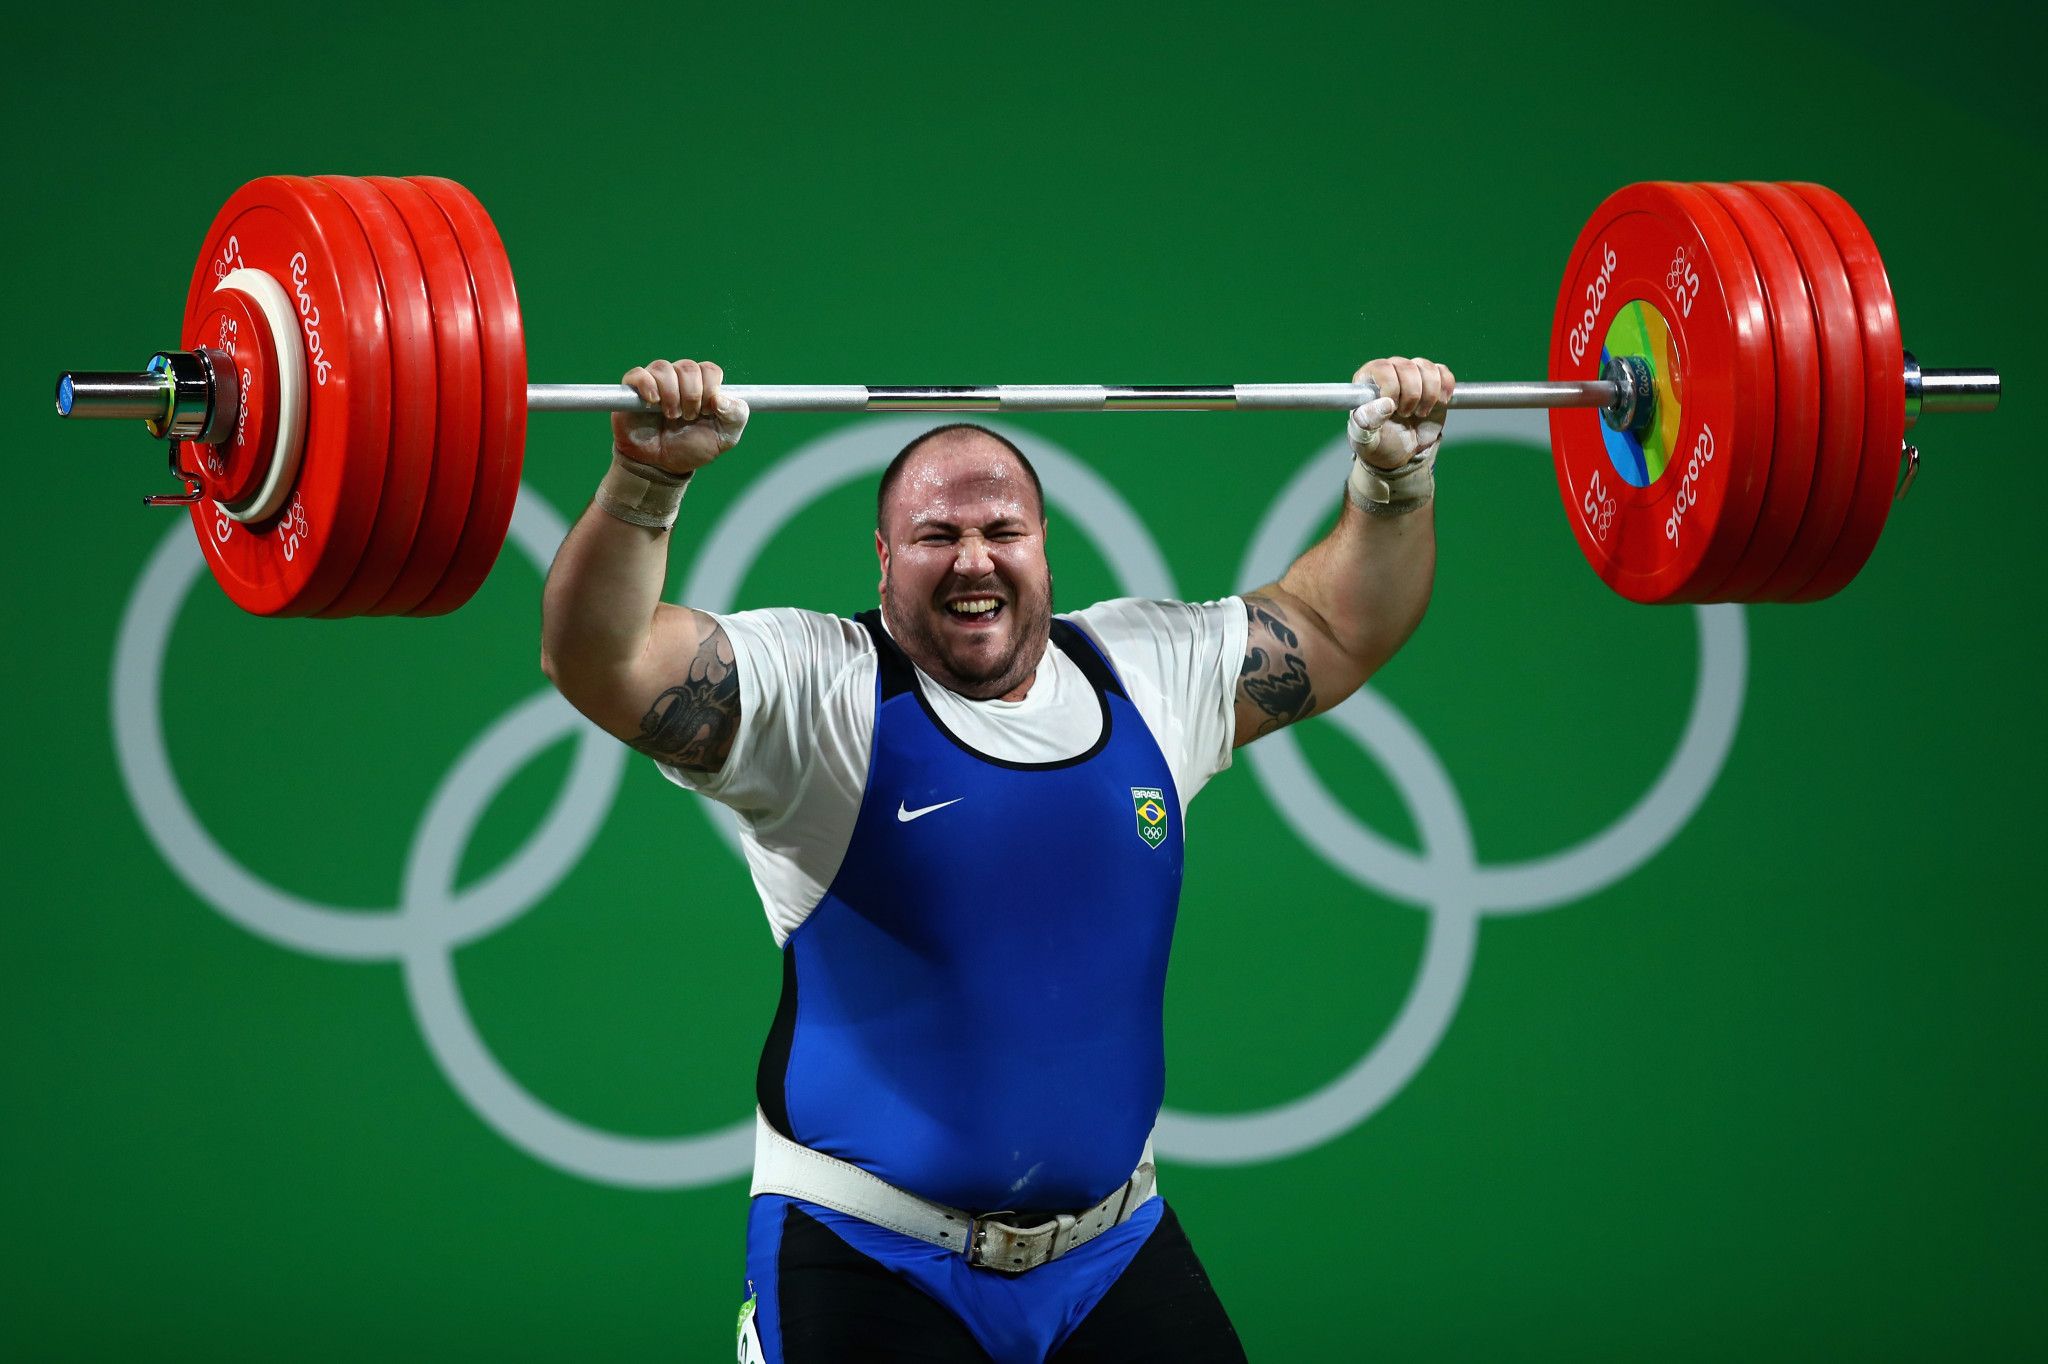 Fernando Reis will be a representative of Brazil at the IWF World Championships in California  ©Getty Images